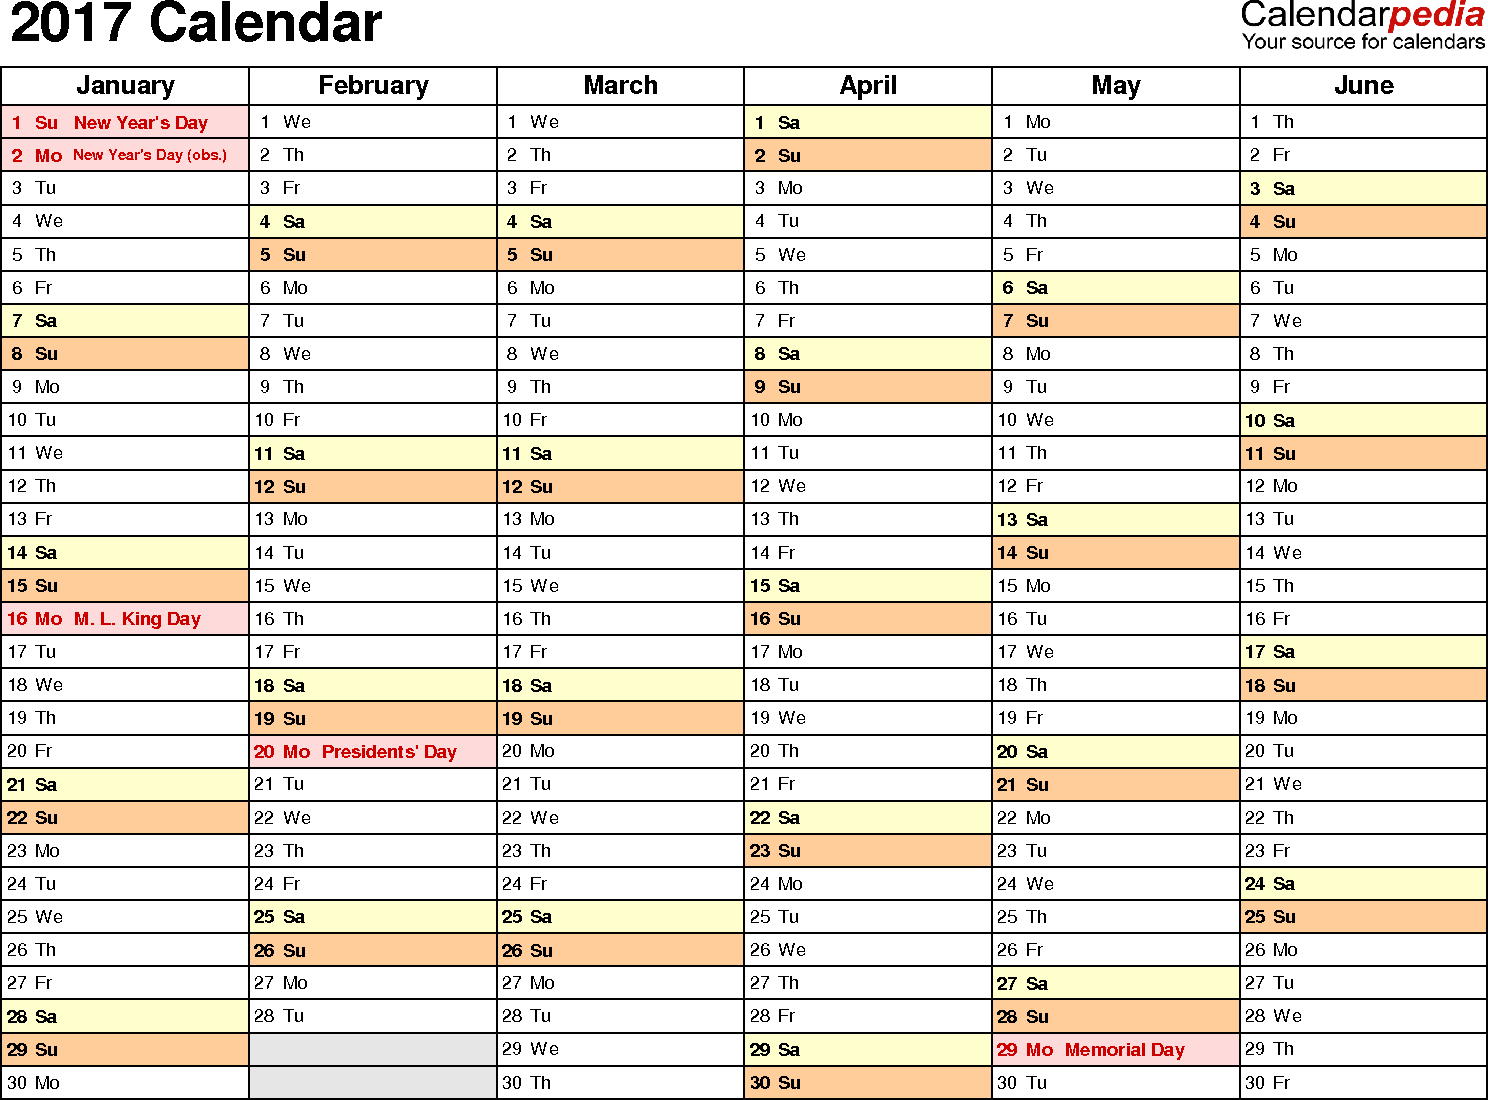 Ediblewildsus  Terrific  Calendar  Download  Free Printable Excel Templates Xls With Heavenly Template   Calendar For Excel Months Horizontally  Pages Landscape Orientation With Attractive Excel Combination Function Also Microsoft Excel Tools In Addition How To Make Drop Down Lists In Excel And Excel Fishbone Diagram As Well As Excel Color Numbers Additionally Excel Help Countif From Calendarpediacom With Ediblewildsus  Heavenly  Calendar  Download  Free Printable Excel Templates Xls With Attractive Template   Calendar For Excel Months Horizontally  Pages Landscape Orientation And Terrific Excel Combination Function Also Microsoft Excel Tools In Addition How To Make Drop Down Lists In Excel From Calendarpediacom